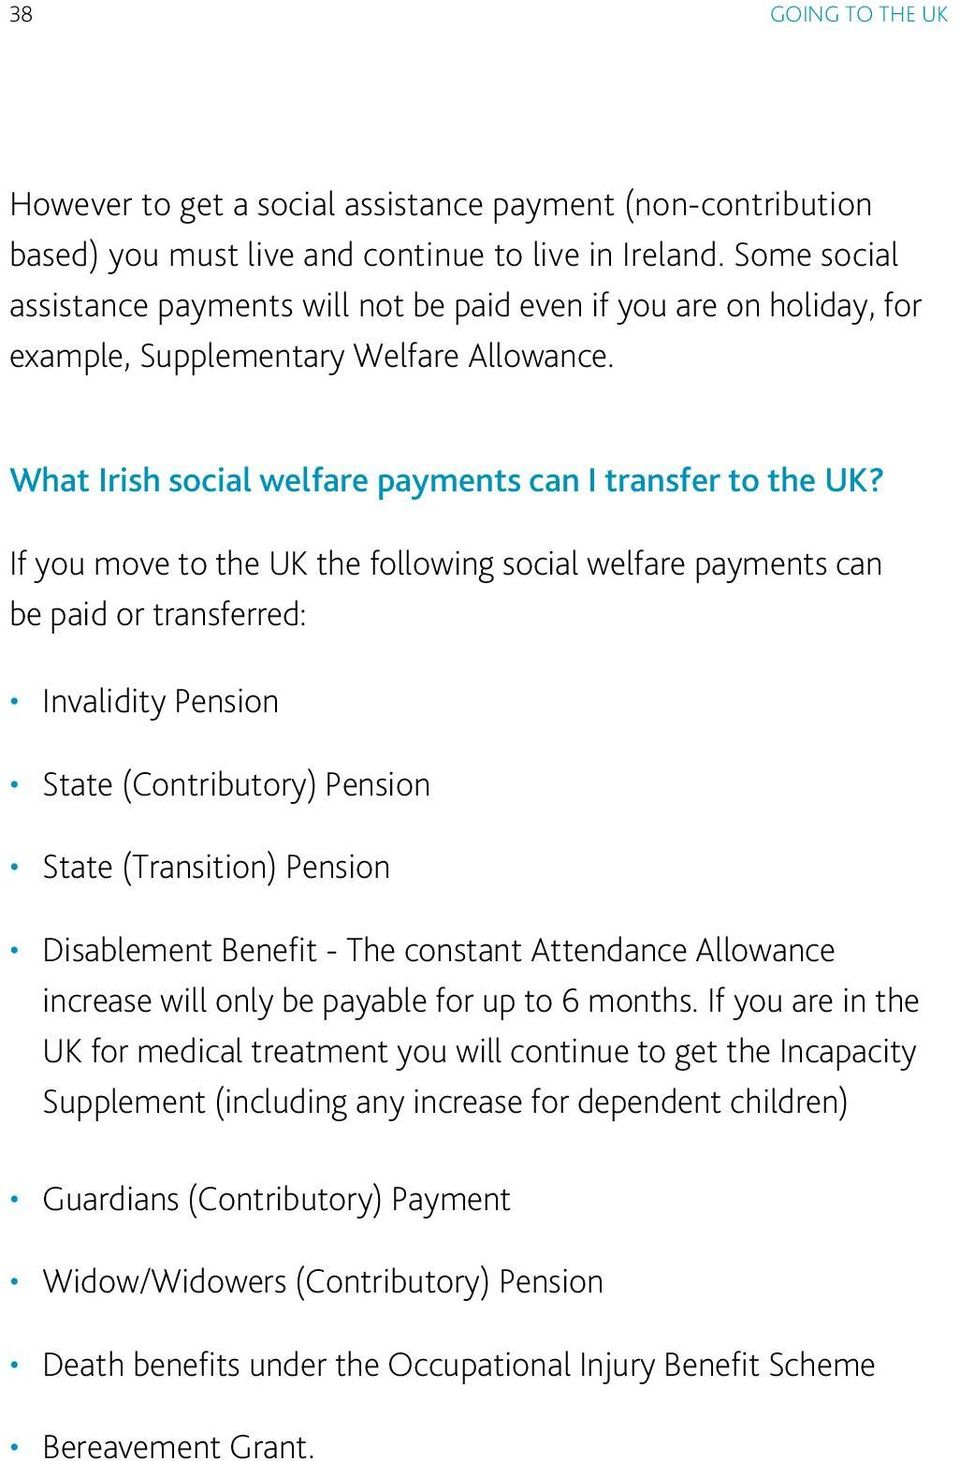 If you move to the UK the following social welfare payments can be paid or transferred: Invalidity Pension State (Contributory) Pension State (Transition) Pension Disablement Benefit - The constant